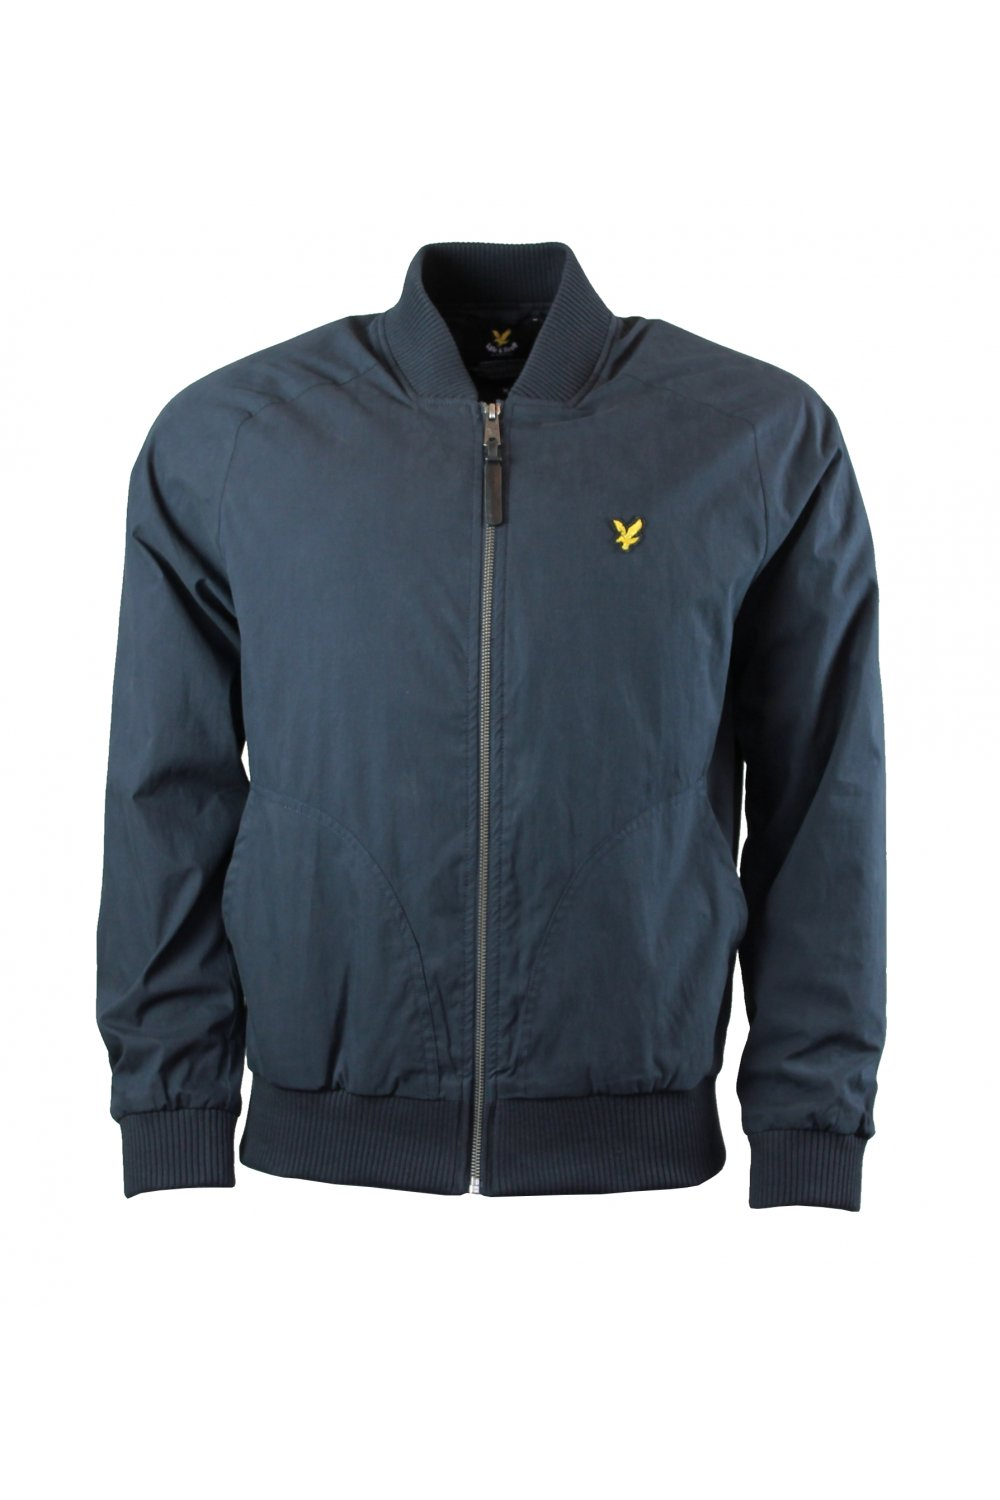 lyle scott bomber jacket new navy lyle scott from thirtysix uk. Black Bedroom Furniture Sets. Home Design Ideas